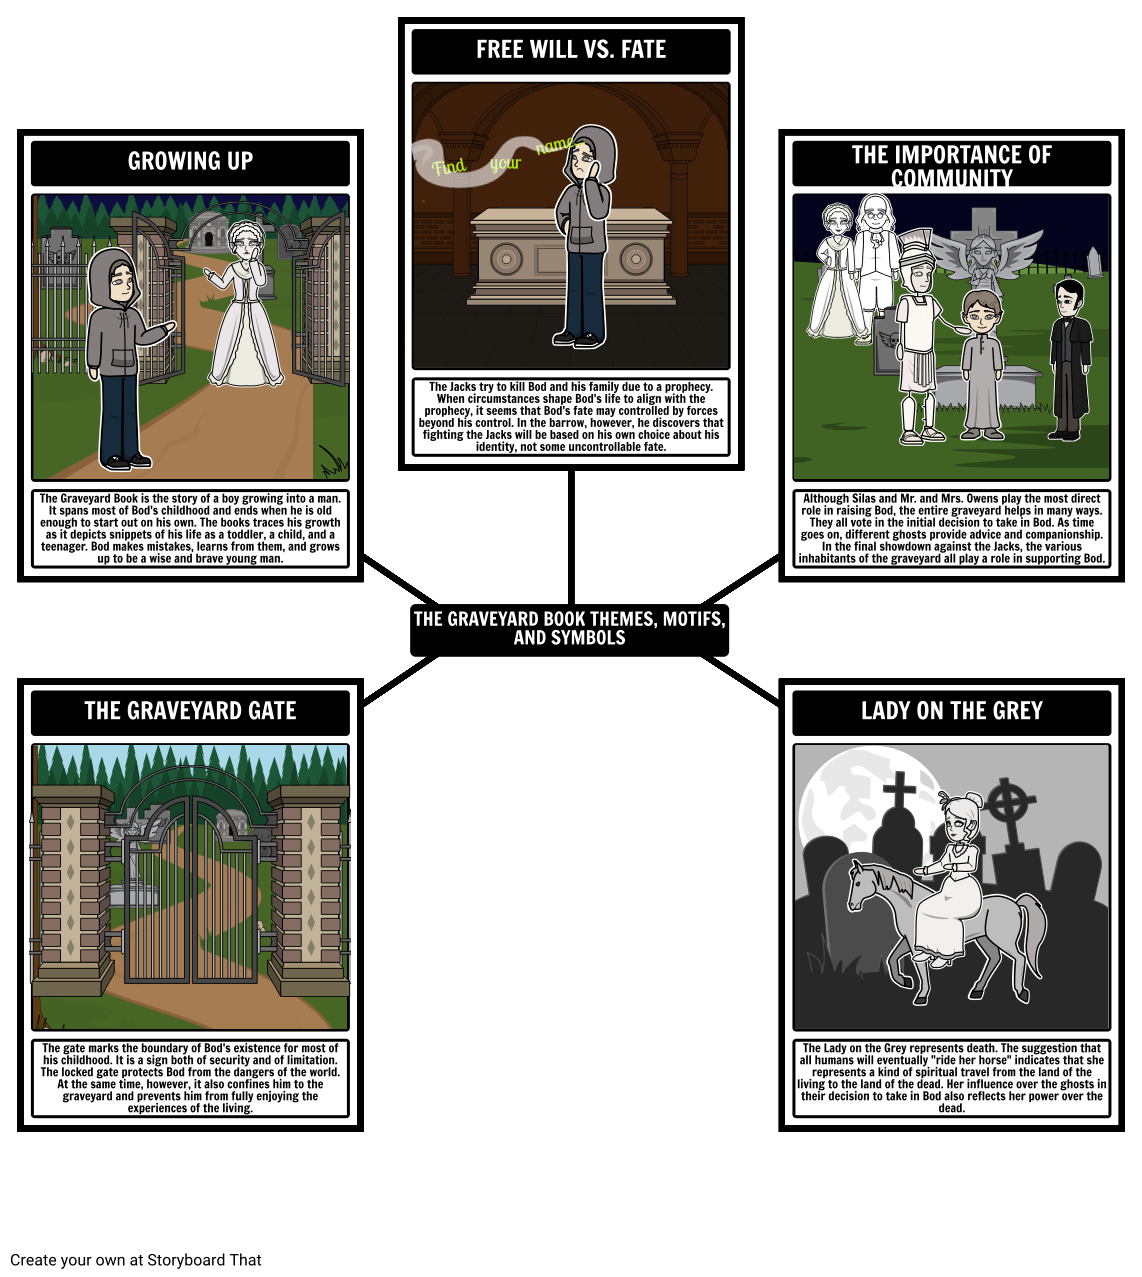 The Graveyard Book Themes, Motifs, and Symbols